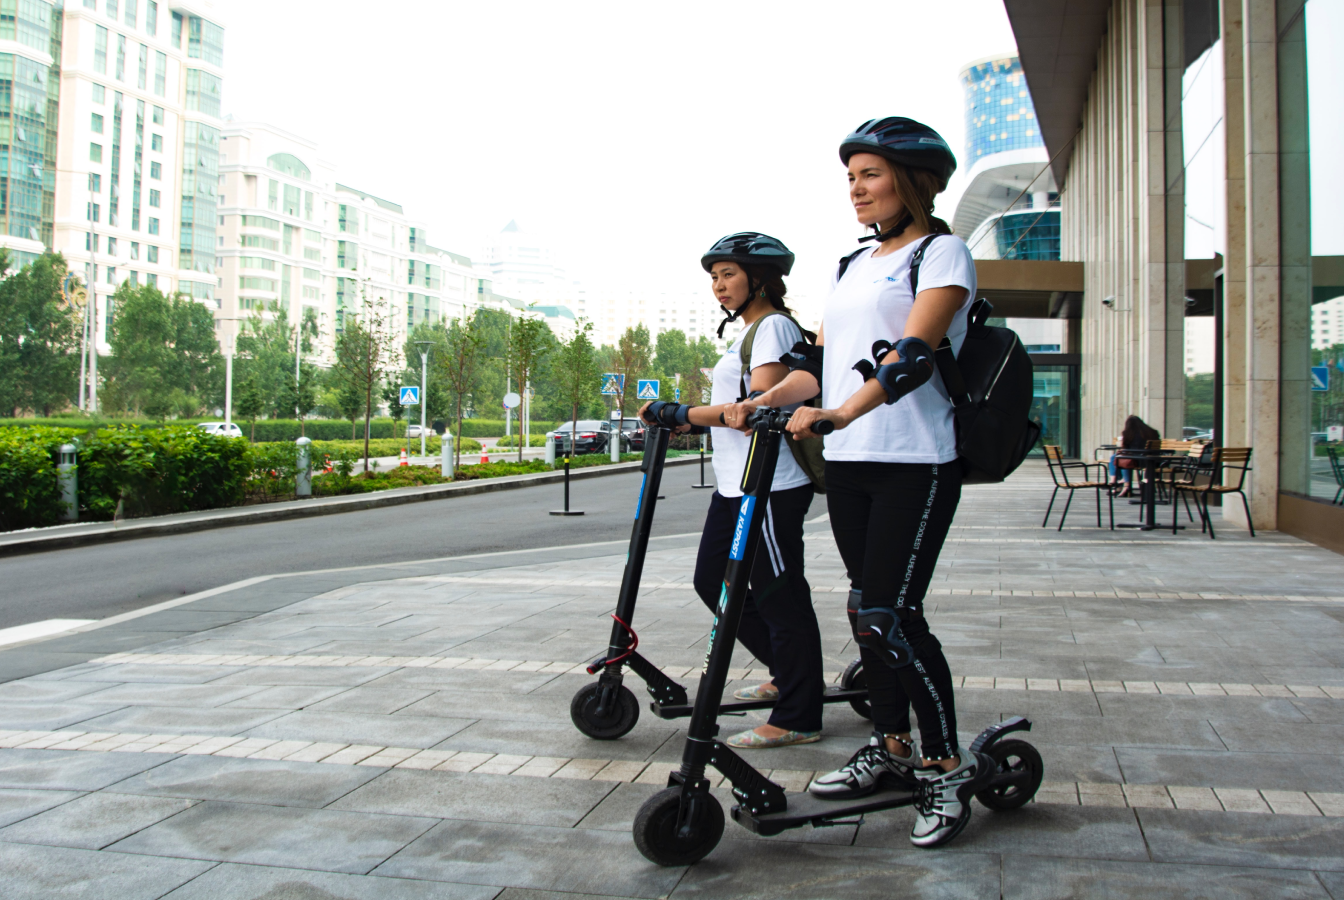 Two people on electric scooters carrying bags